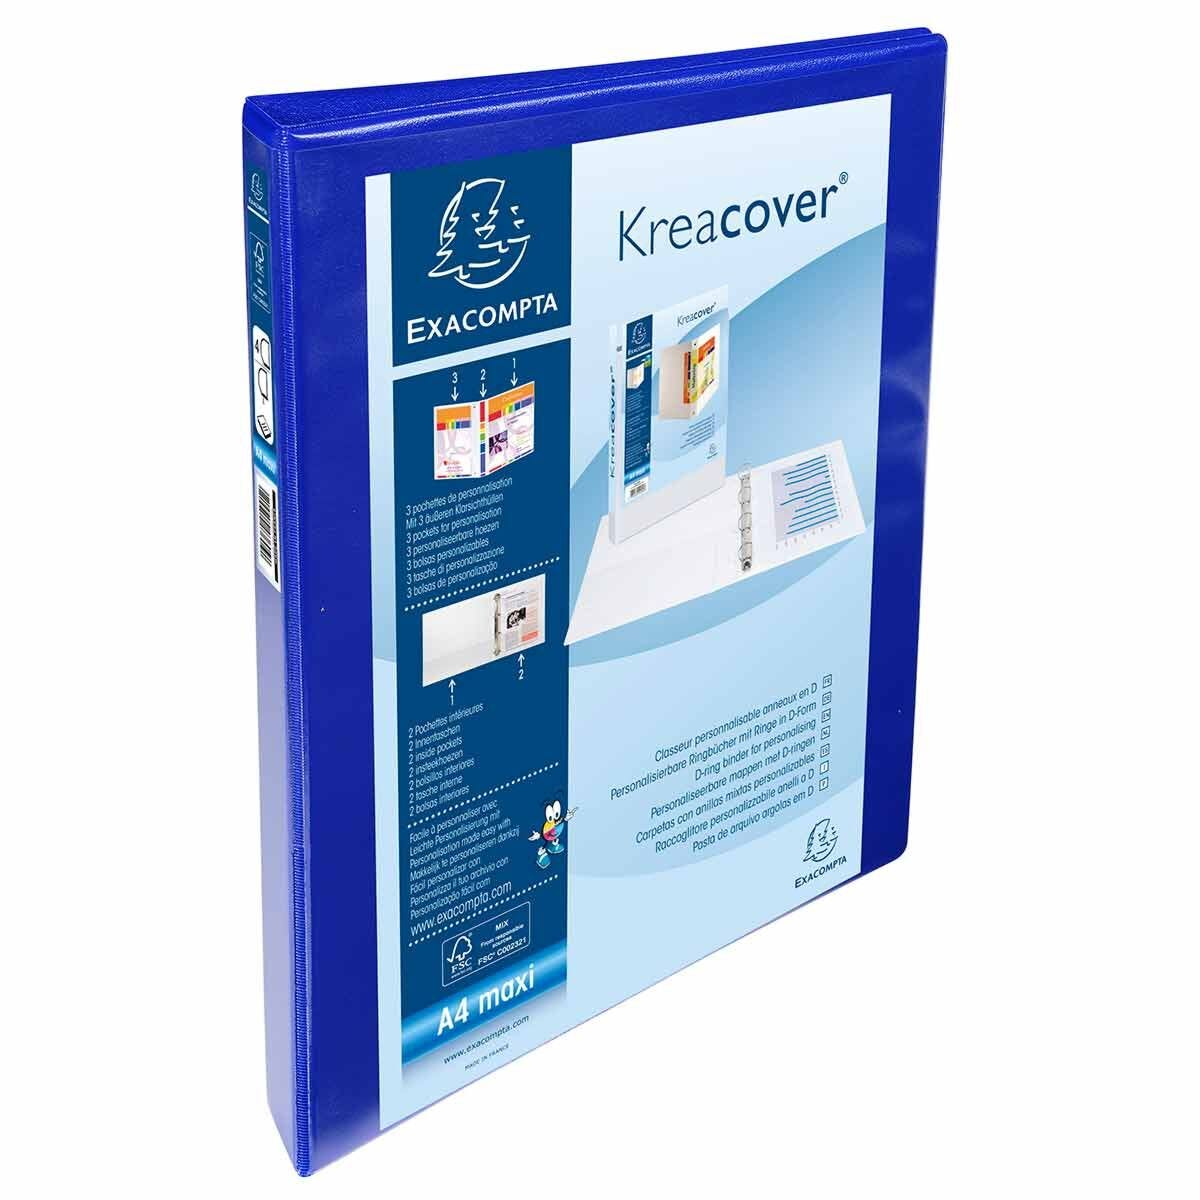 Exacompta Kreacover Personal Ring Binder A4 Plus 4 Rings 20mm 3 Pockets Pack of 10 Blue